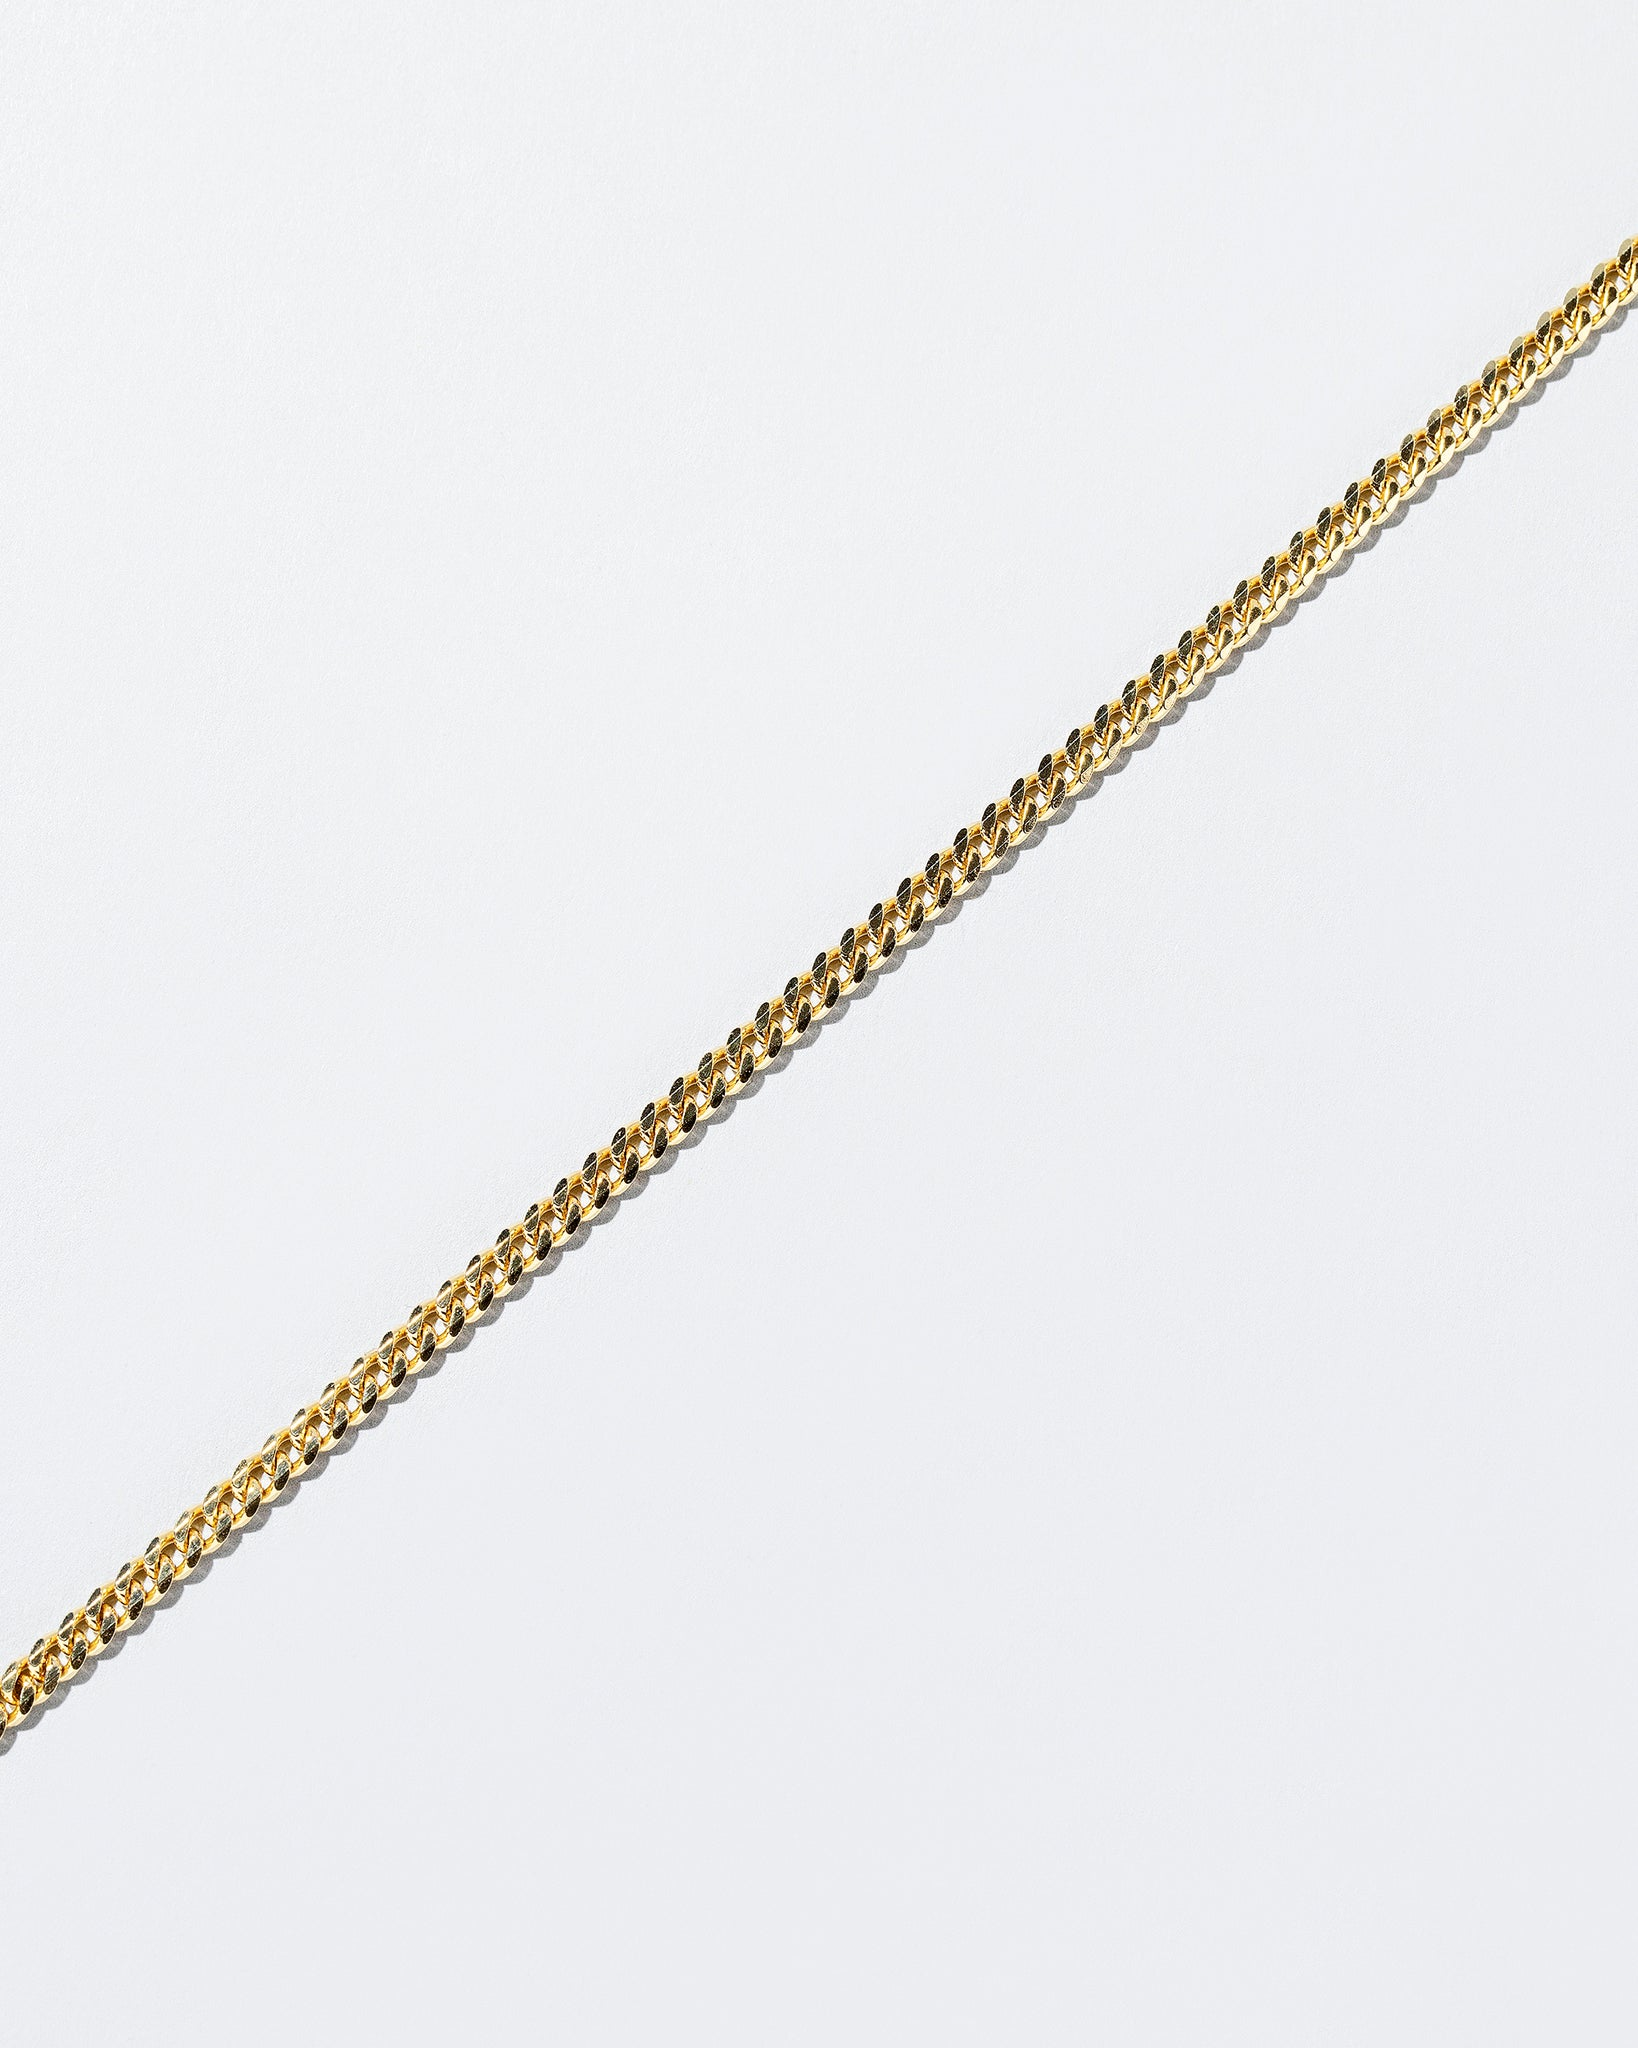 Curb Chain Necklace 3.4mm on flat surface close up